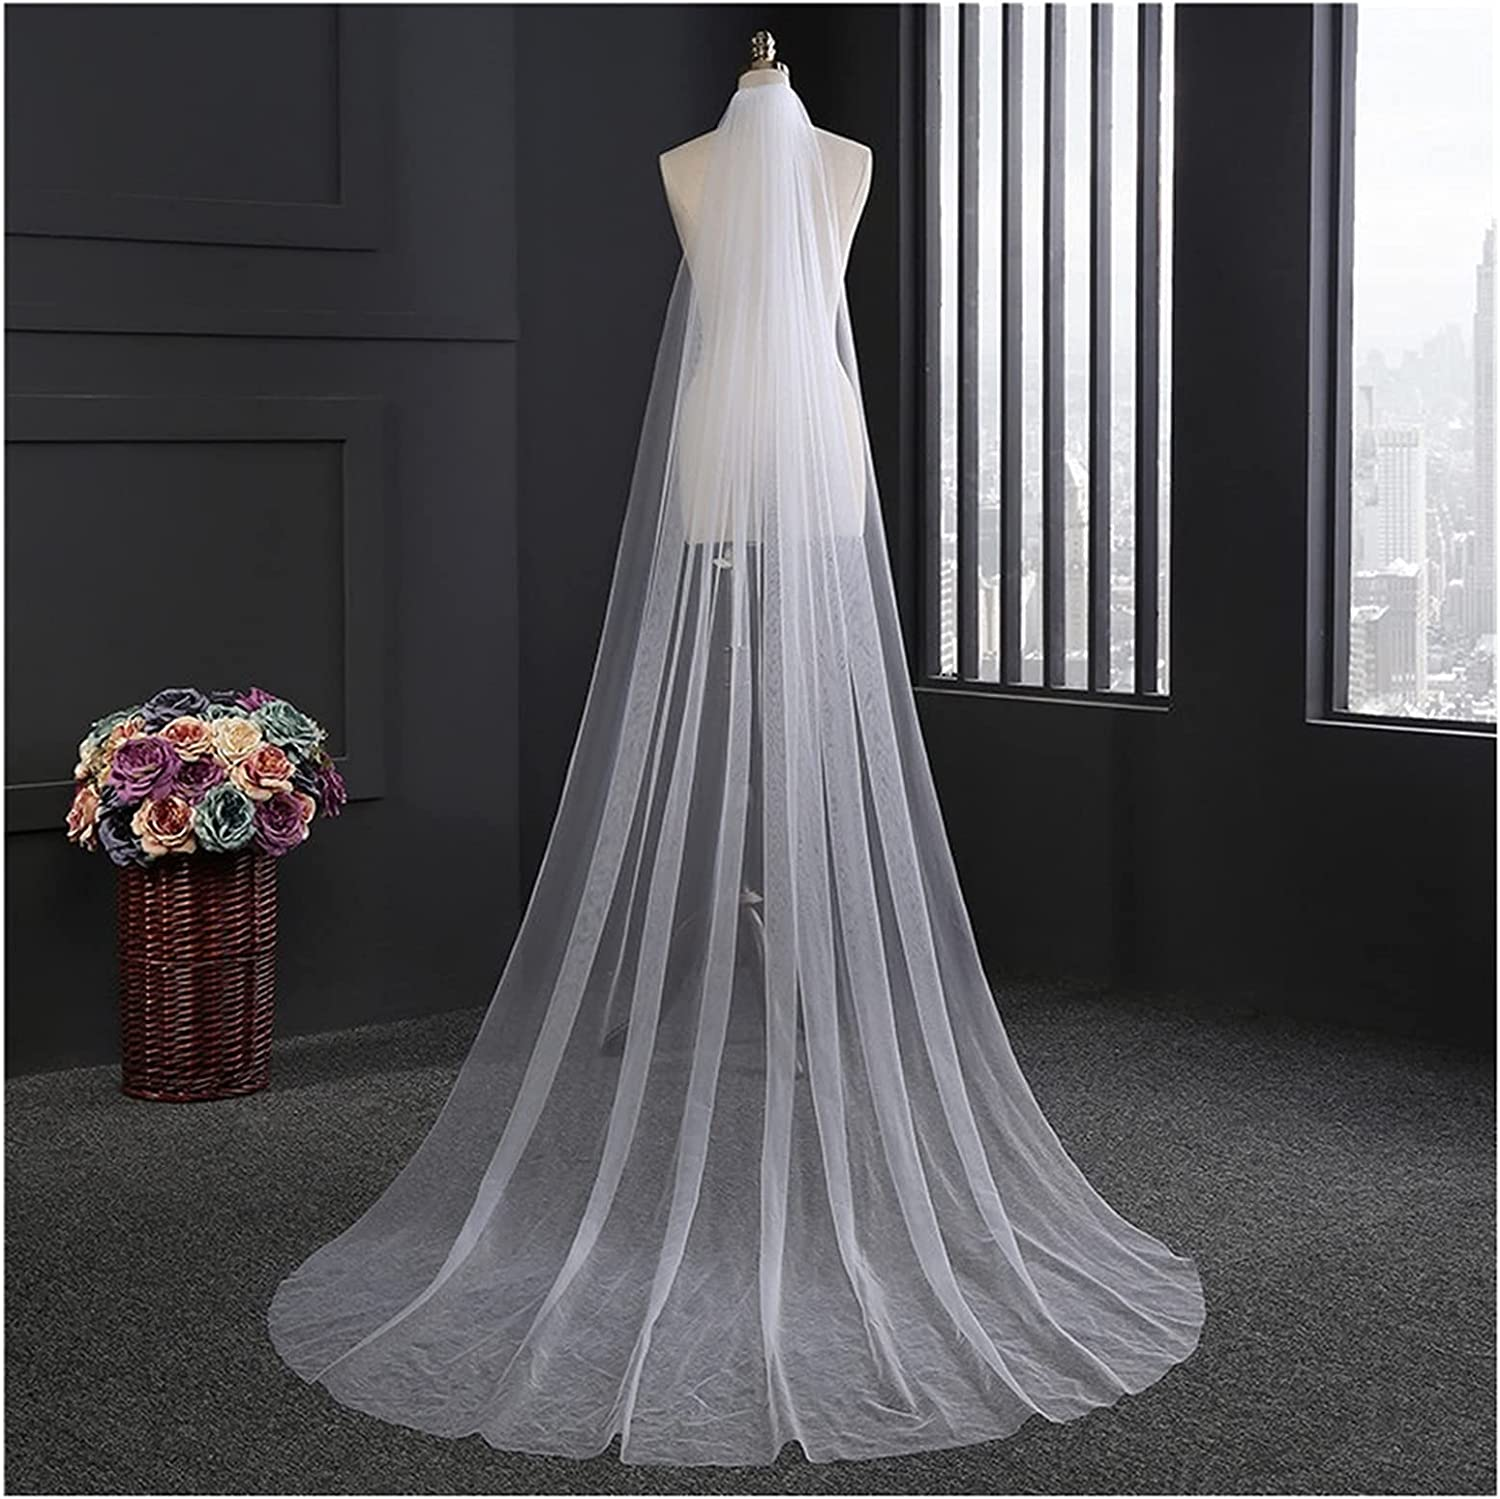 YYOBK Ts Wedding Long 3m 2m Import Two-Color White Veil Ivory Bridal Cash special price O